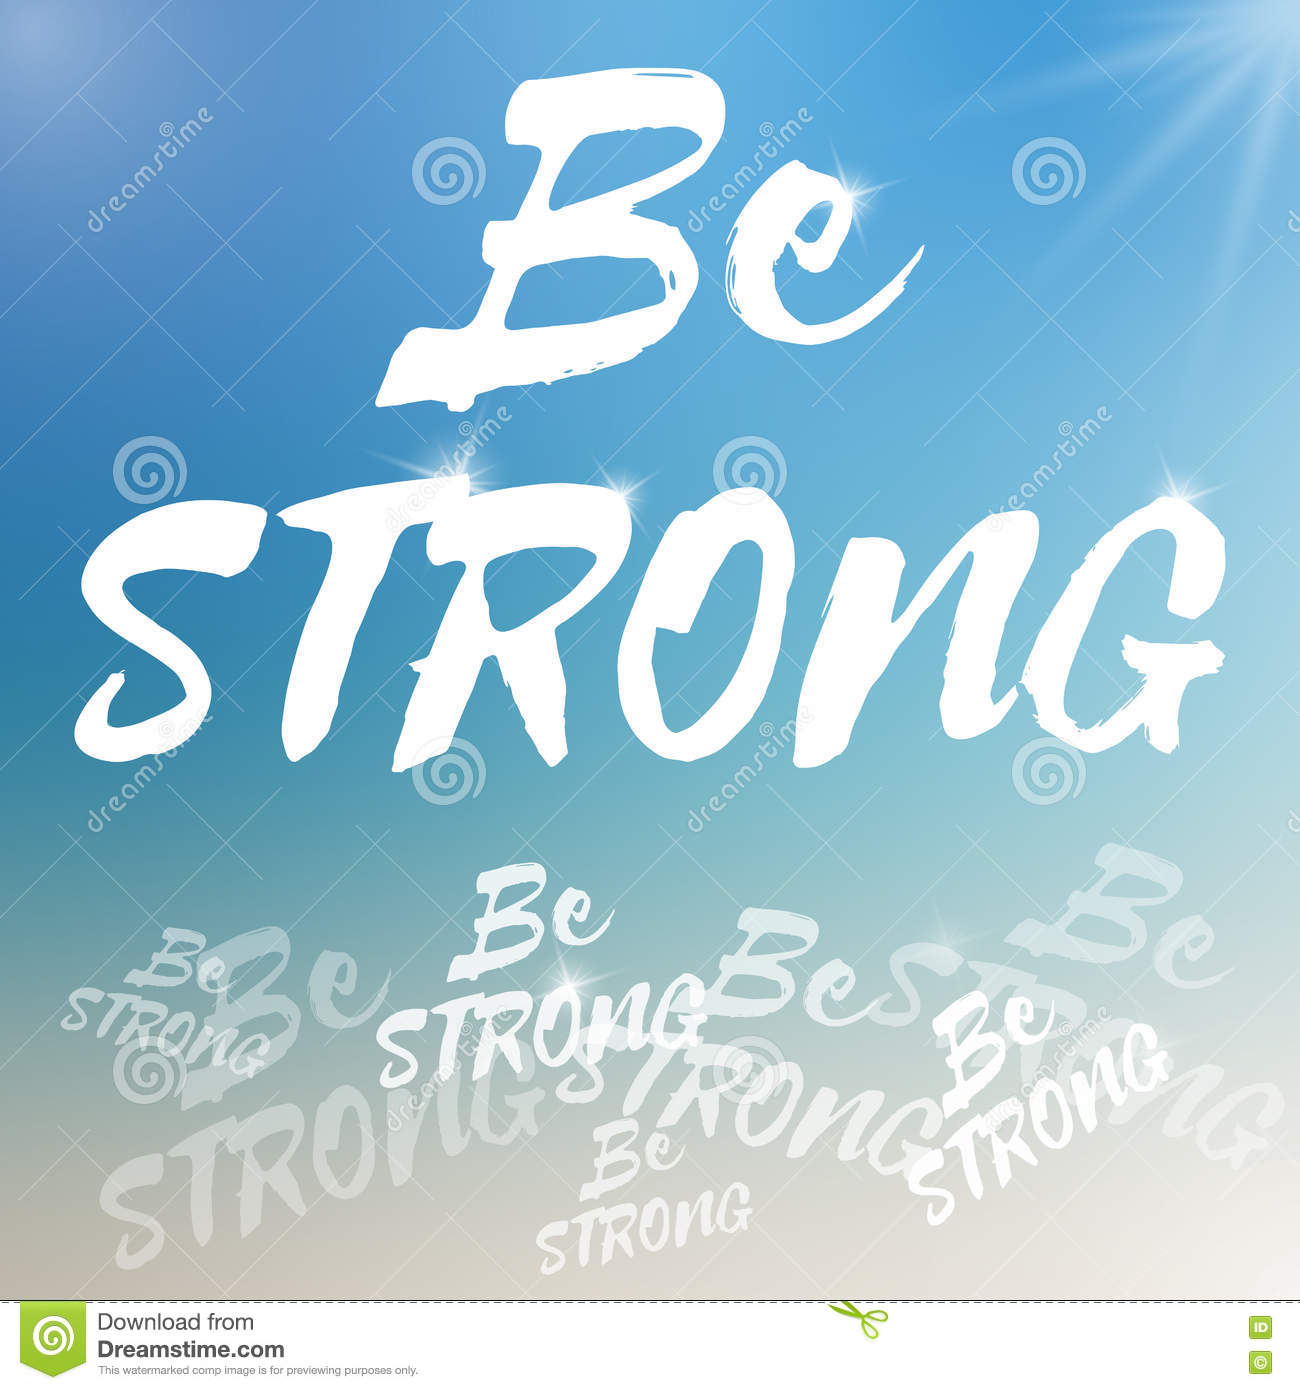 be strong motivational poster template with blurred background stock